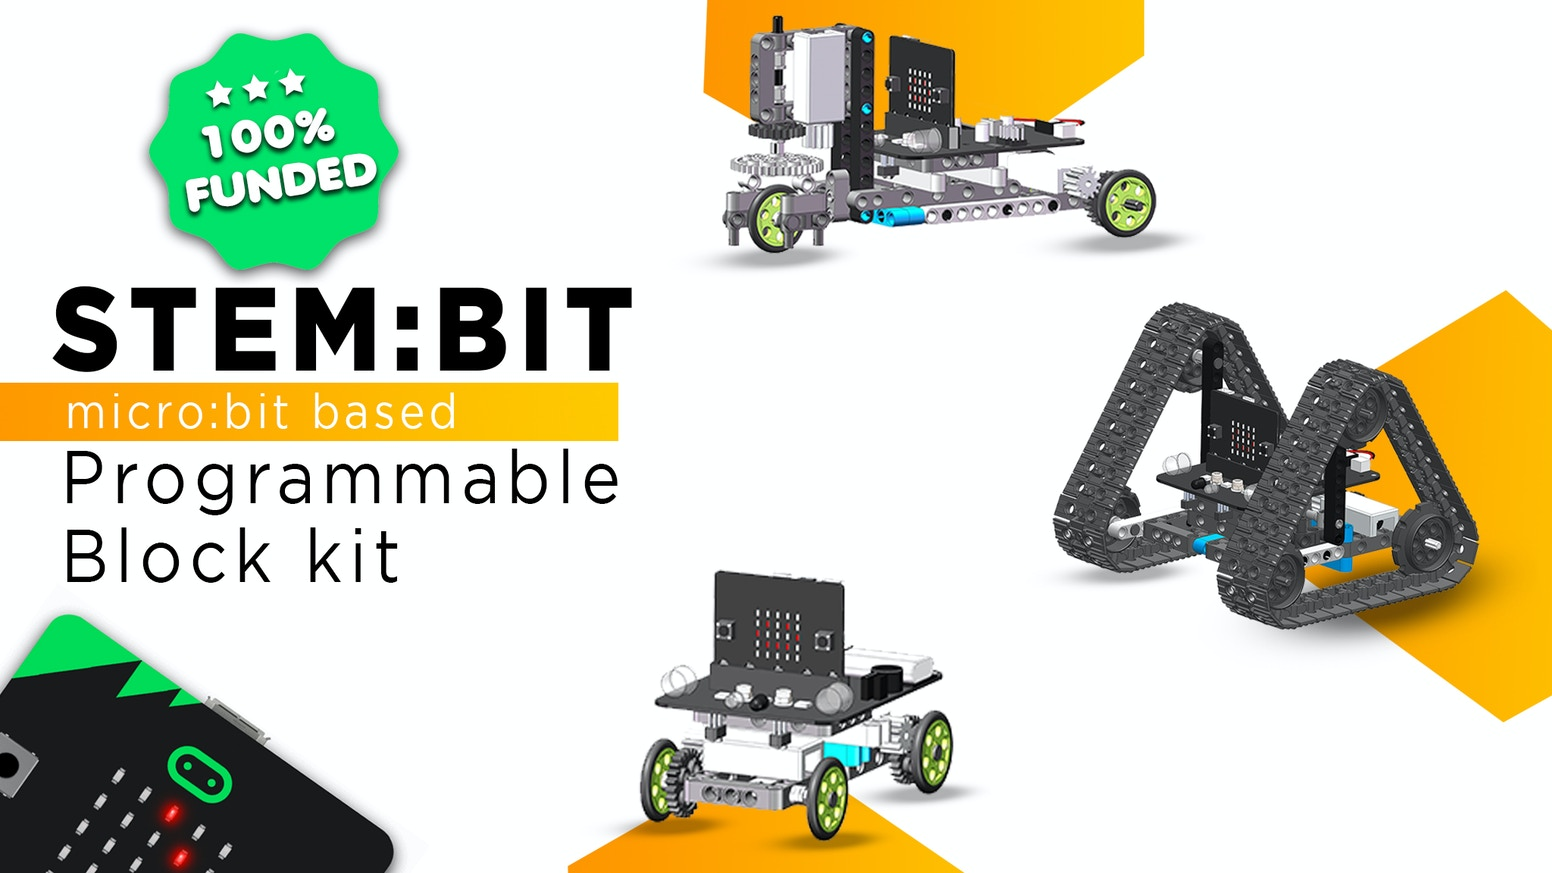 micro:bit Powered | STEM Based | Easy to Assemble | Programmable Blocks kit | For 8+ age groups | Play & Learn